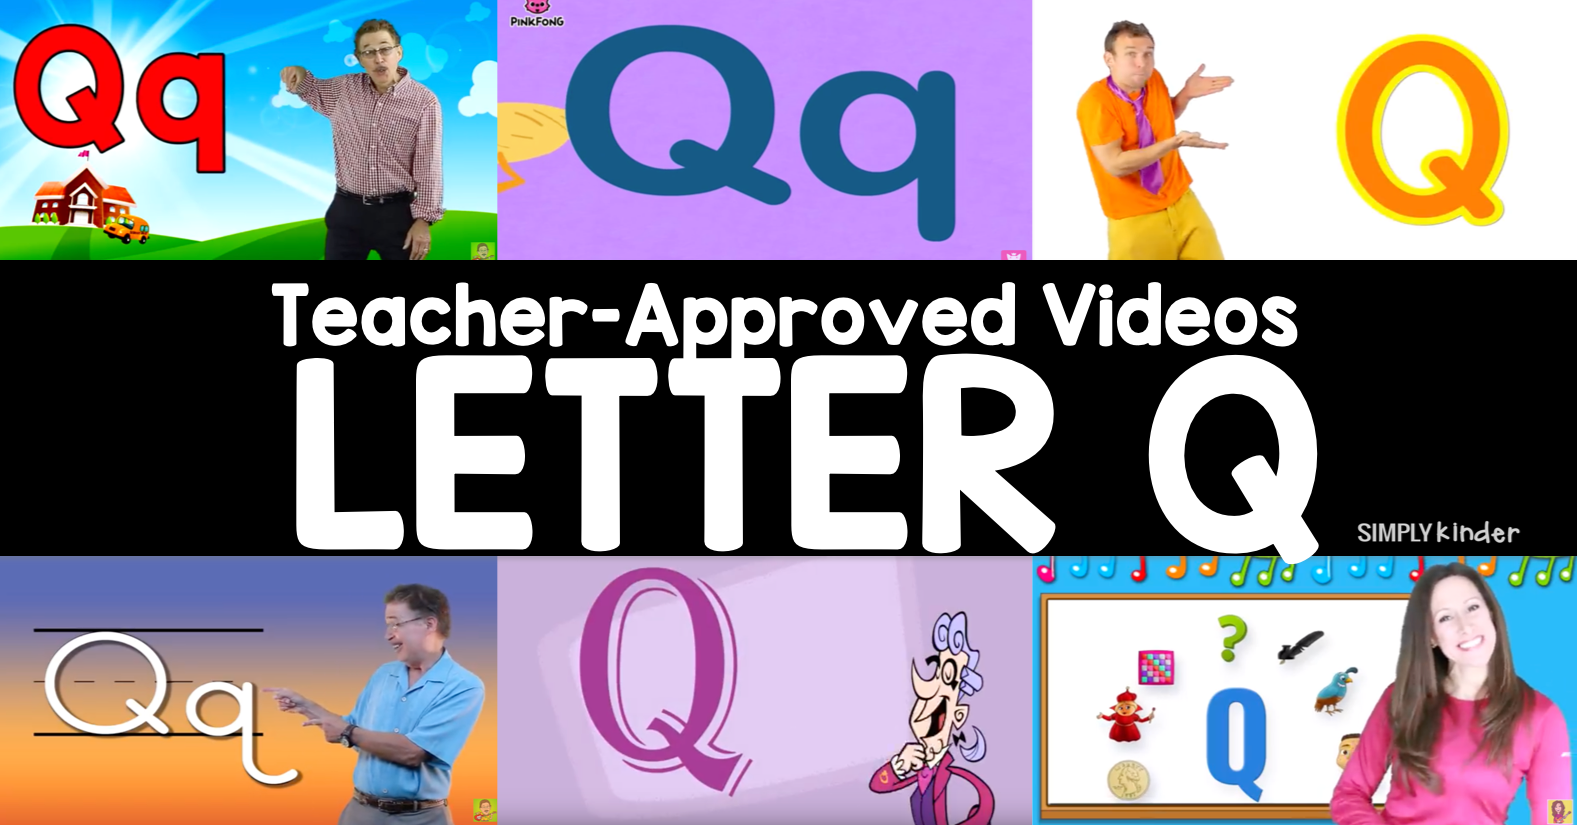 Teacher-Approved Videos Letter Q